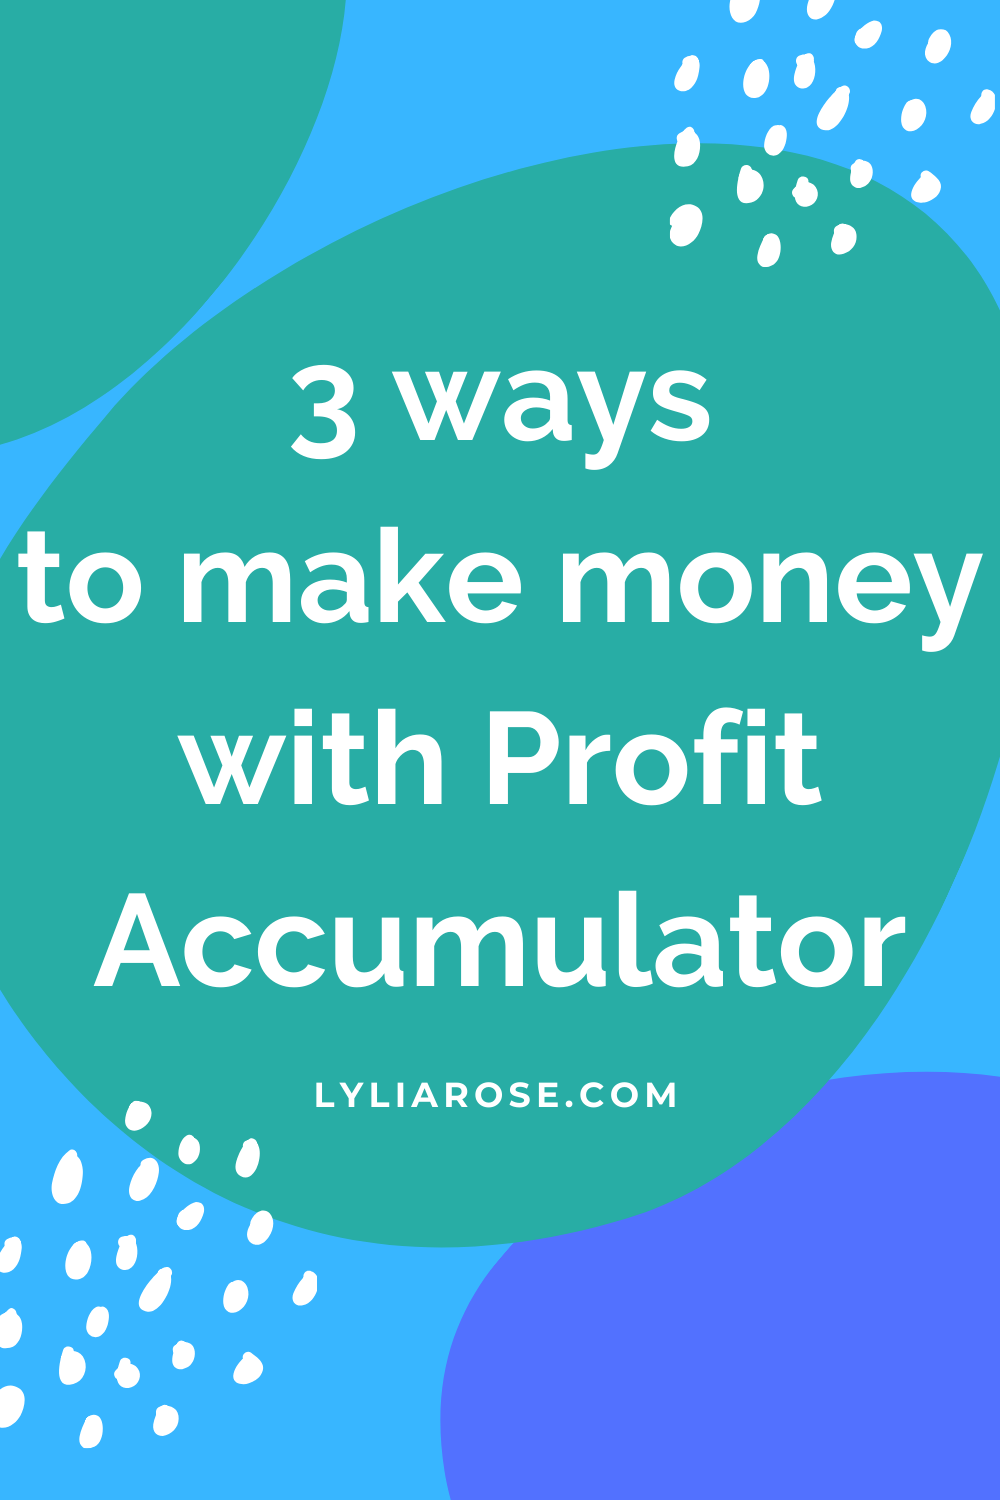 3 ways to make money with Profit Accumulator